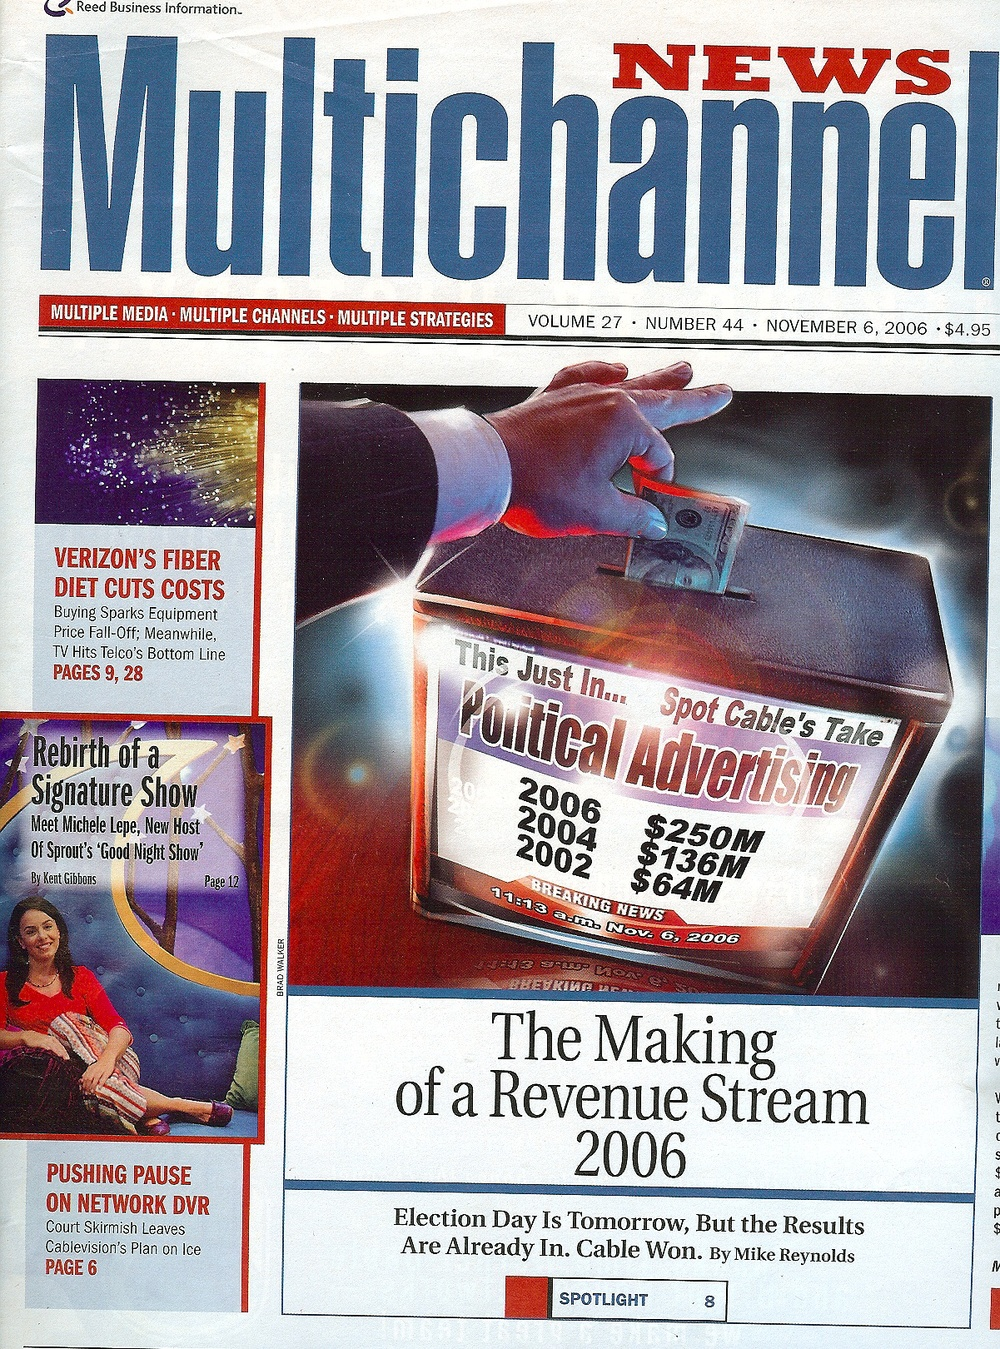 Multichannel-news-article-p1.jpg